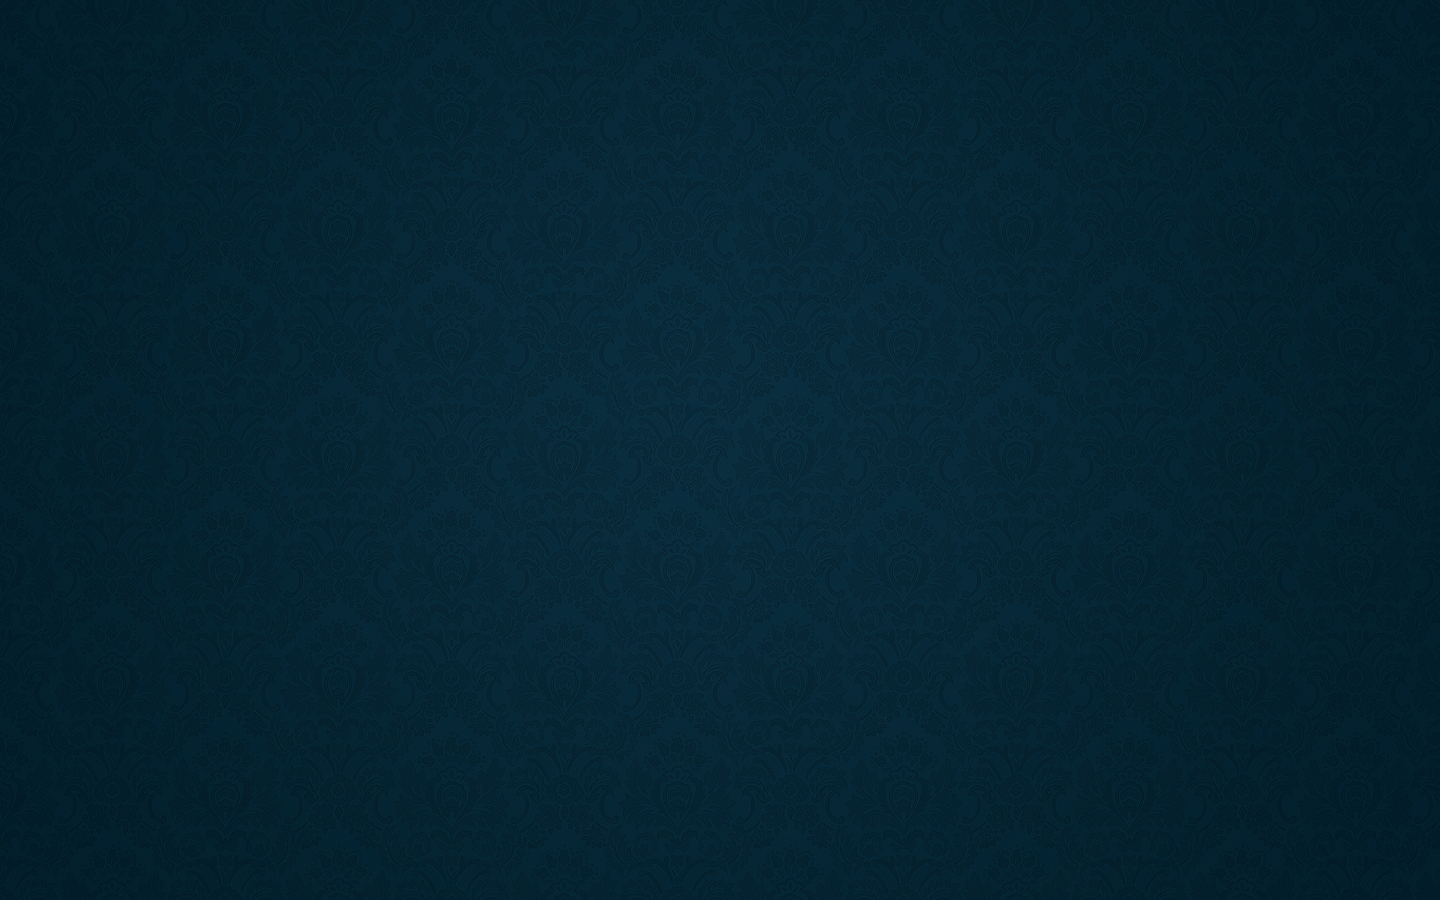 Solid Color Wallpaper